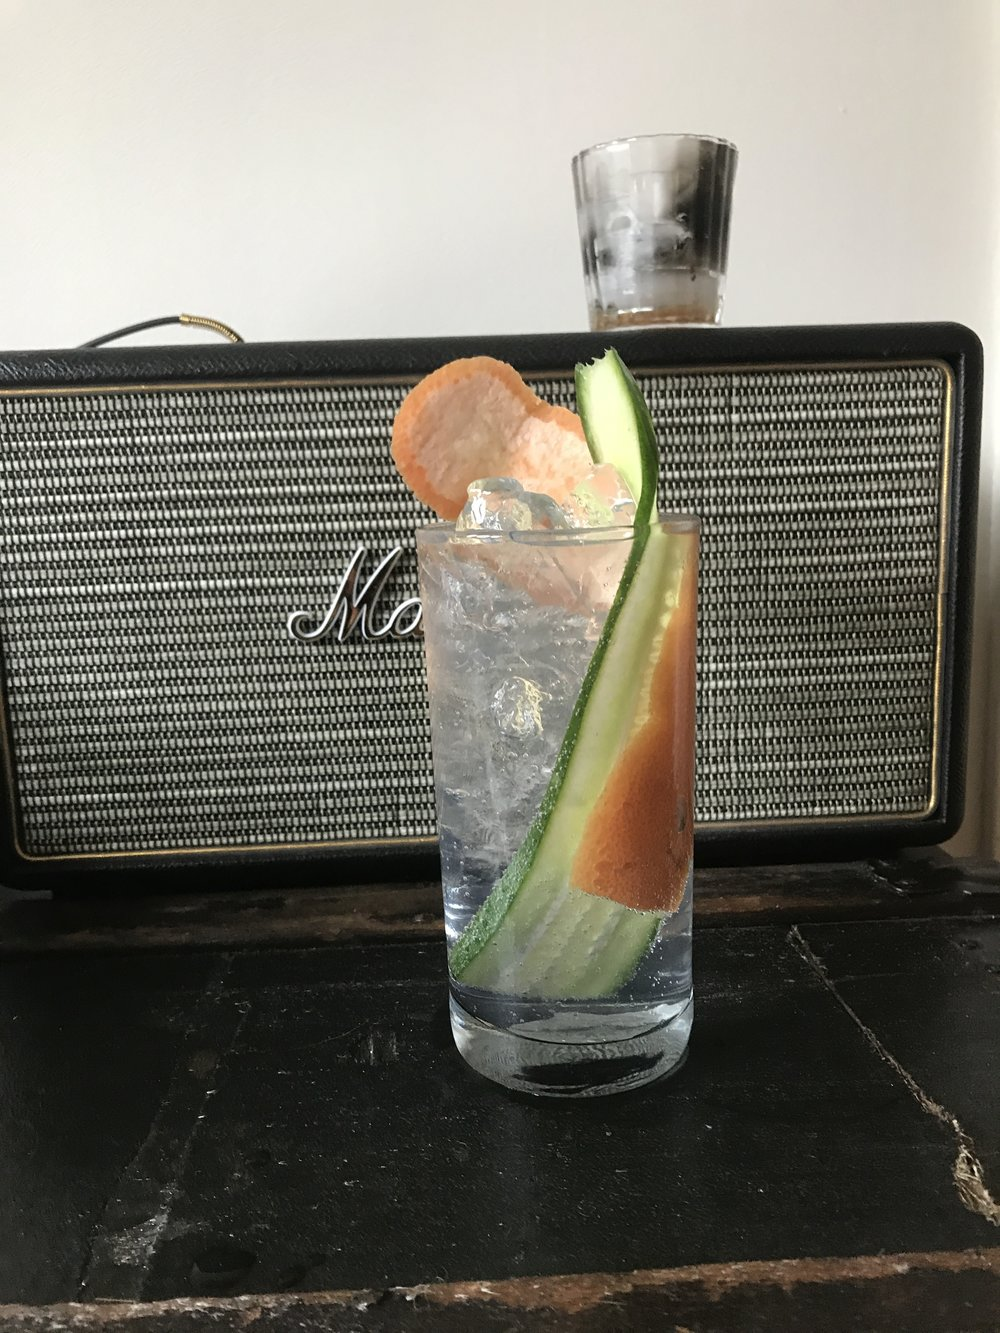 ILEGAL + TONIC - 2oz Ilegal Mezcal Joven5oz TonicBuild in a collins glass. Garnish with cucumber and grapefruit peel.